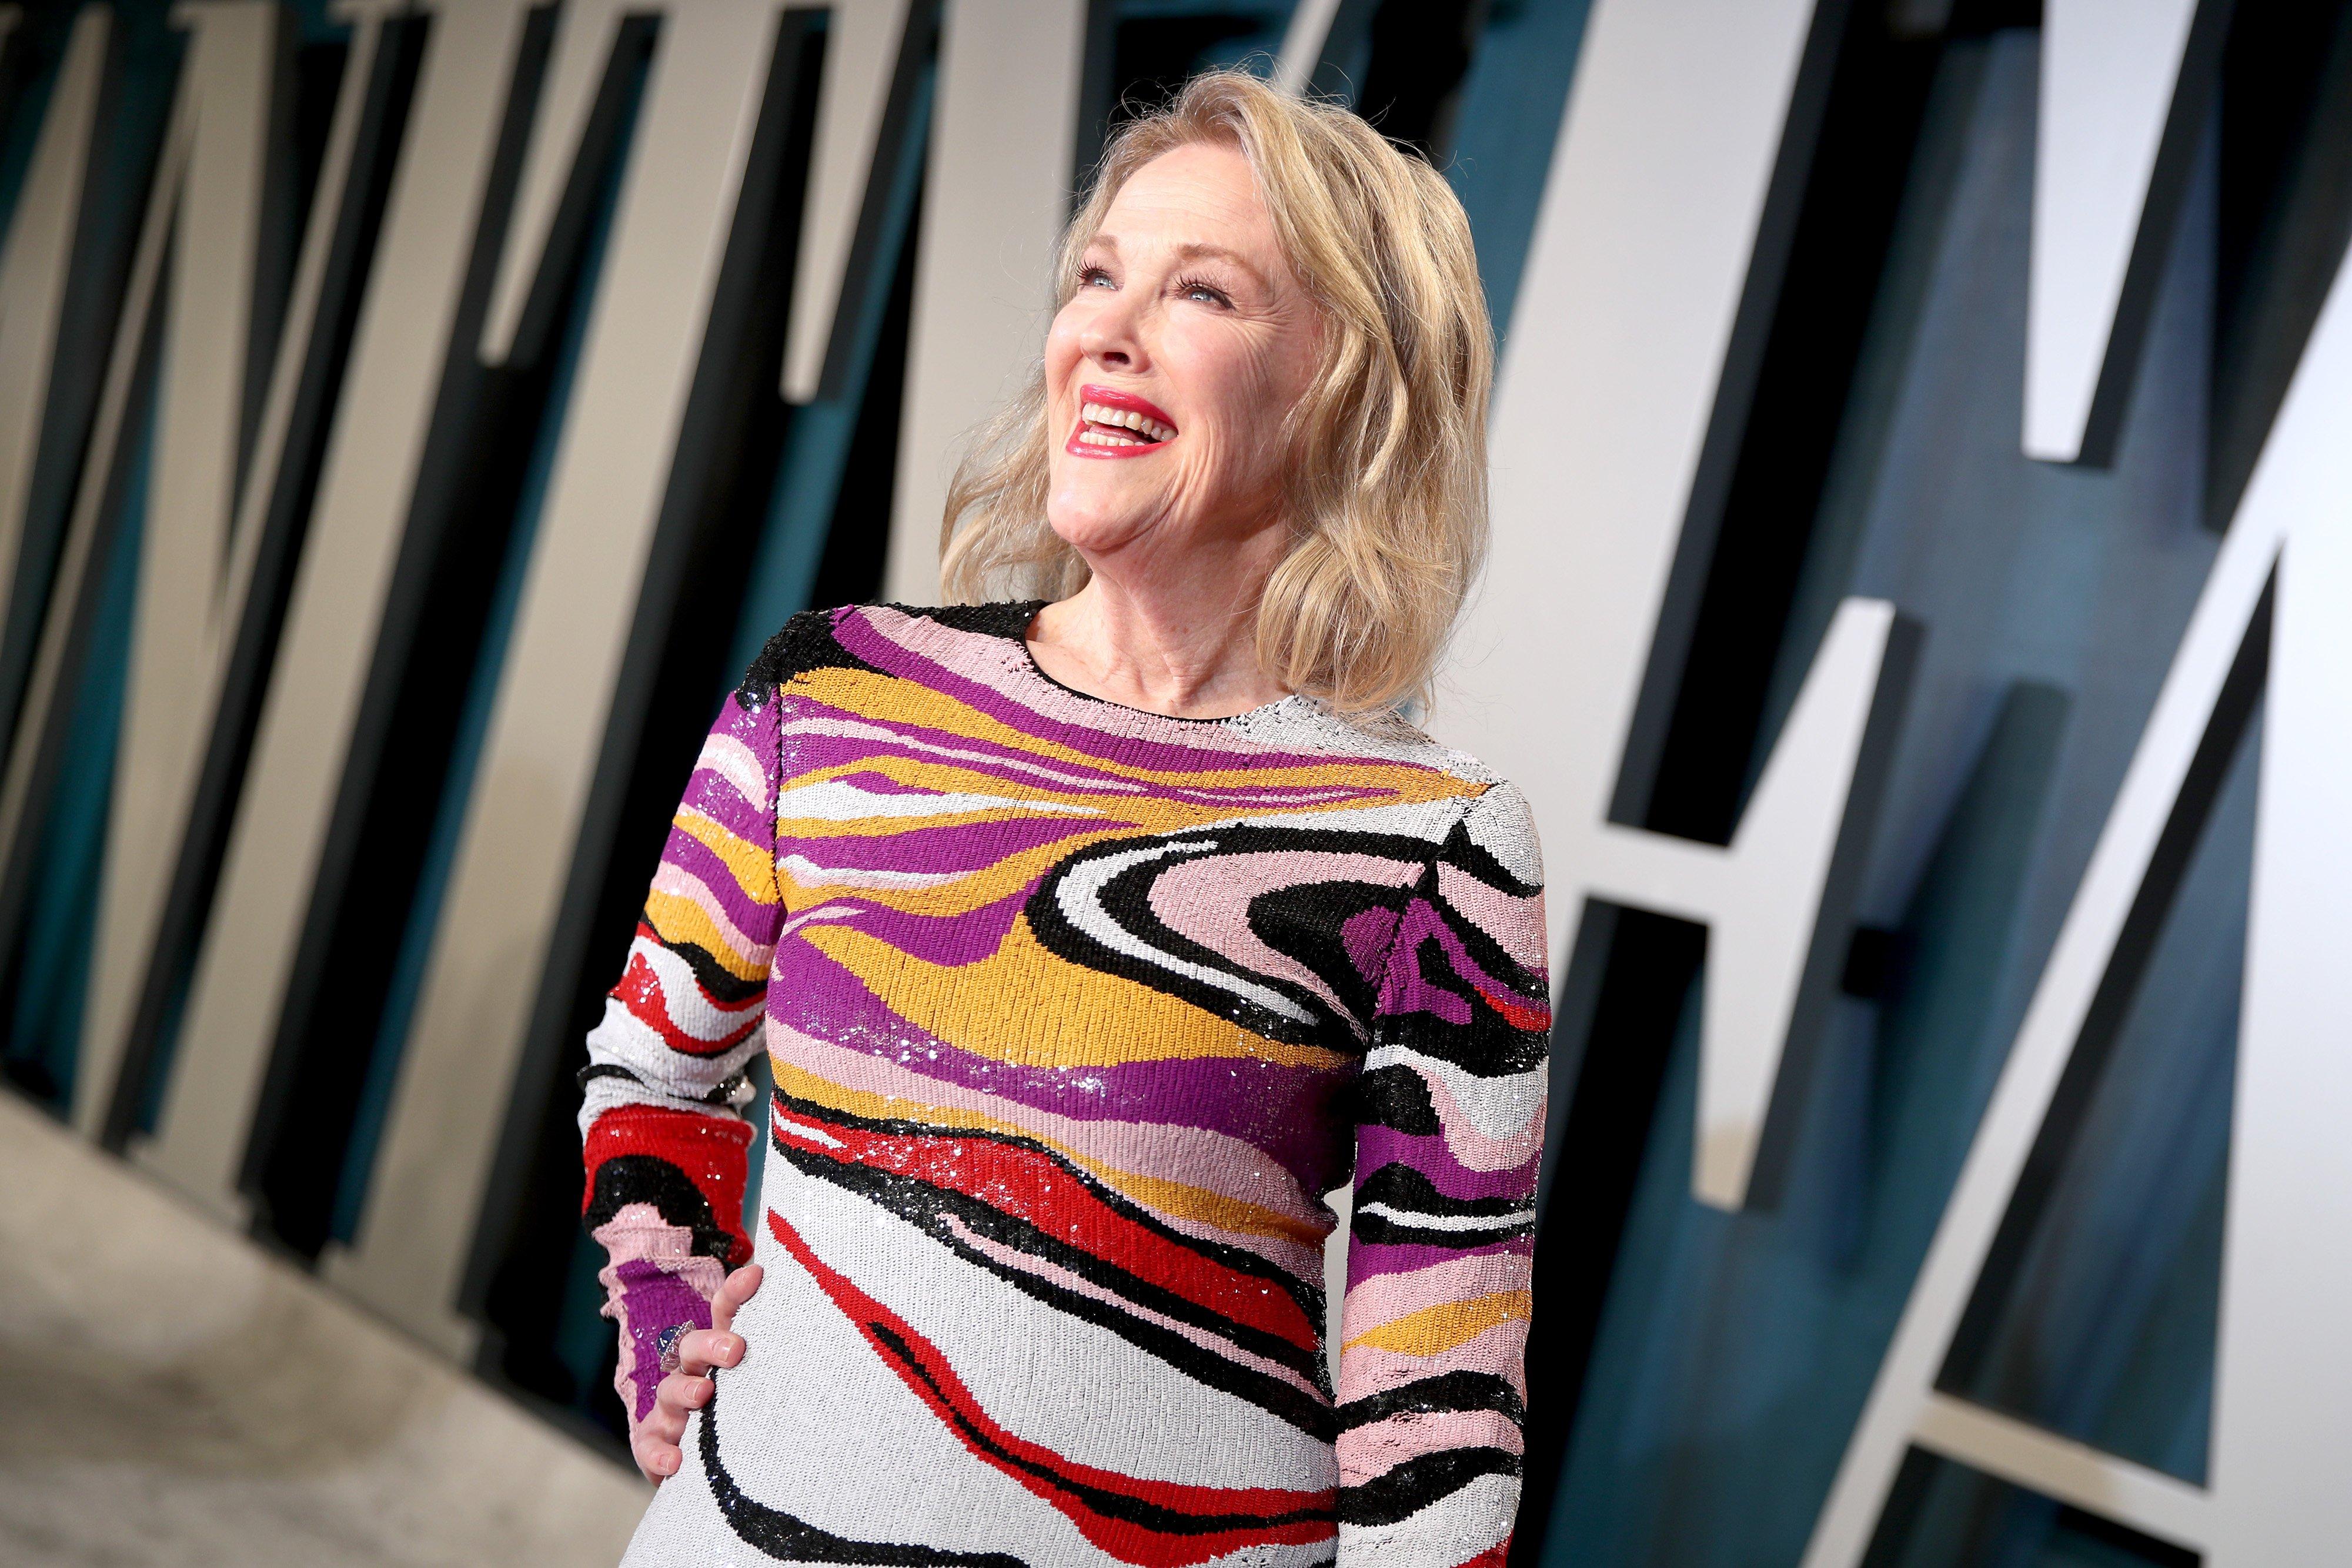 Catherine O'Hara attends the 2020 Vanity Fair Oscar Party on February 09, 2020 in Beverly Hills, California | Photo: Getty Images